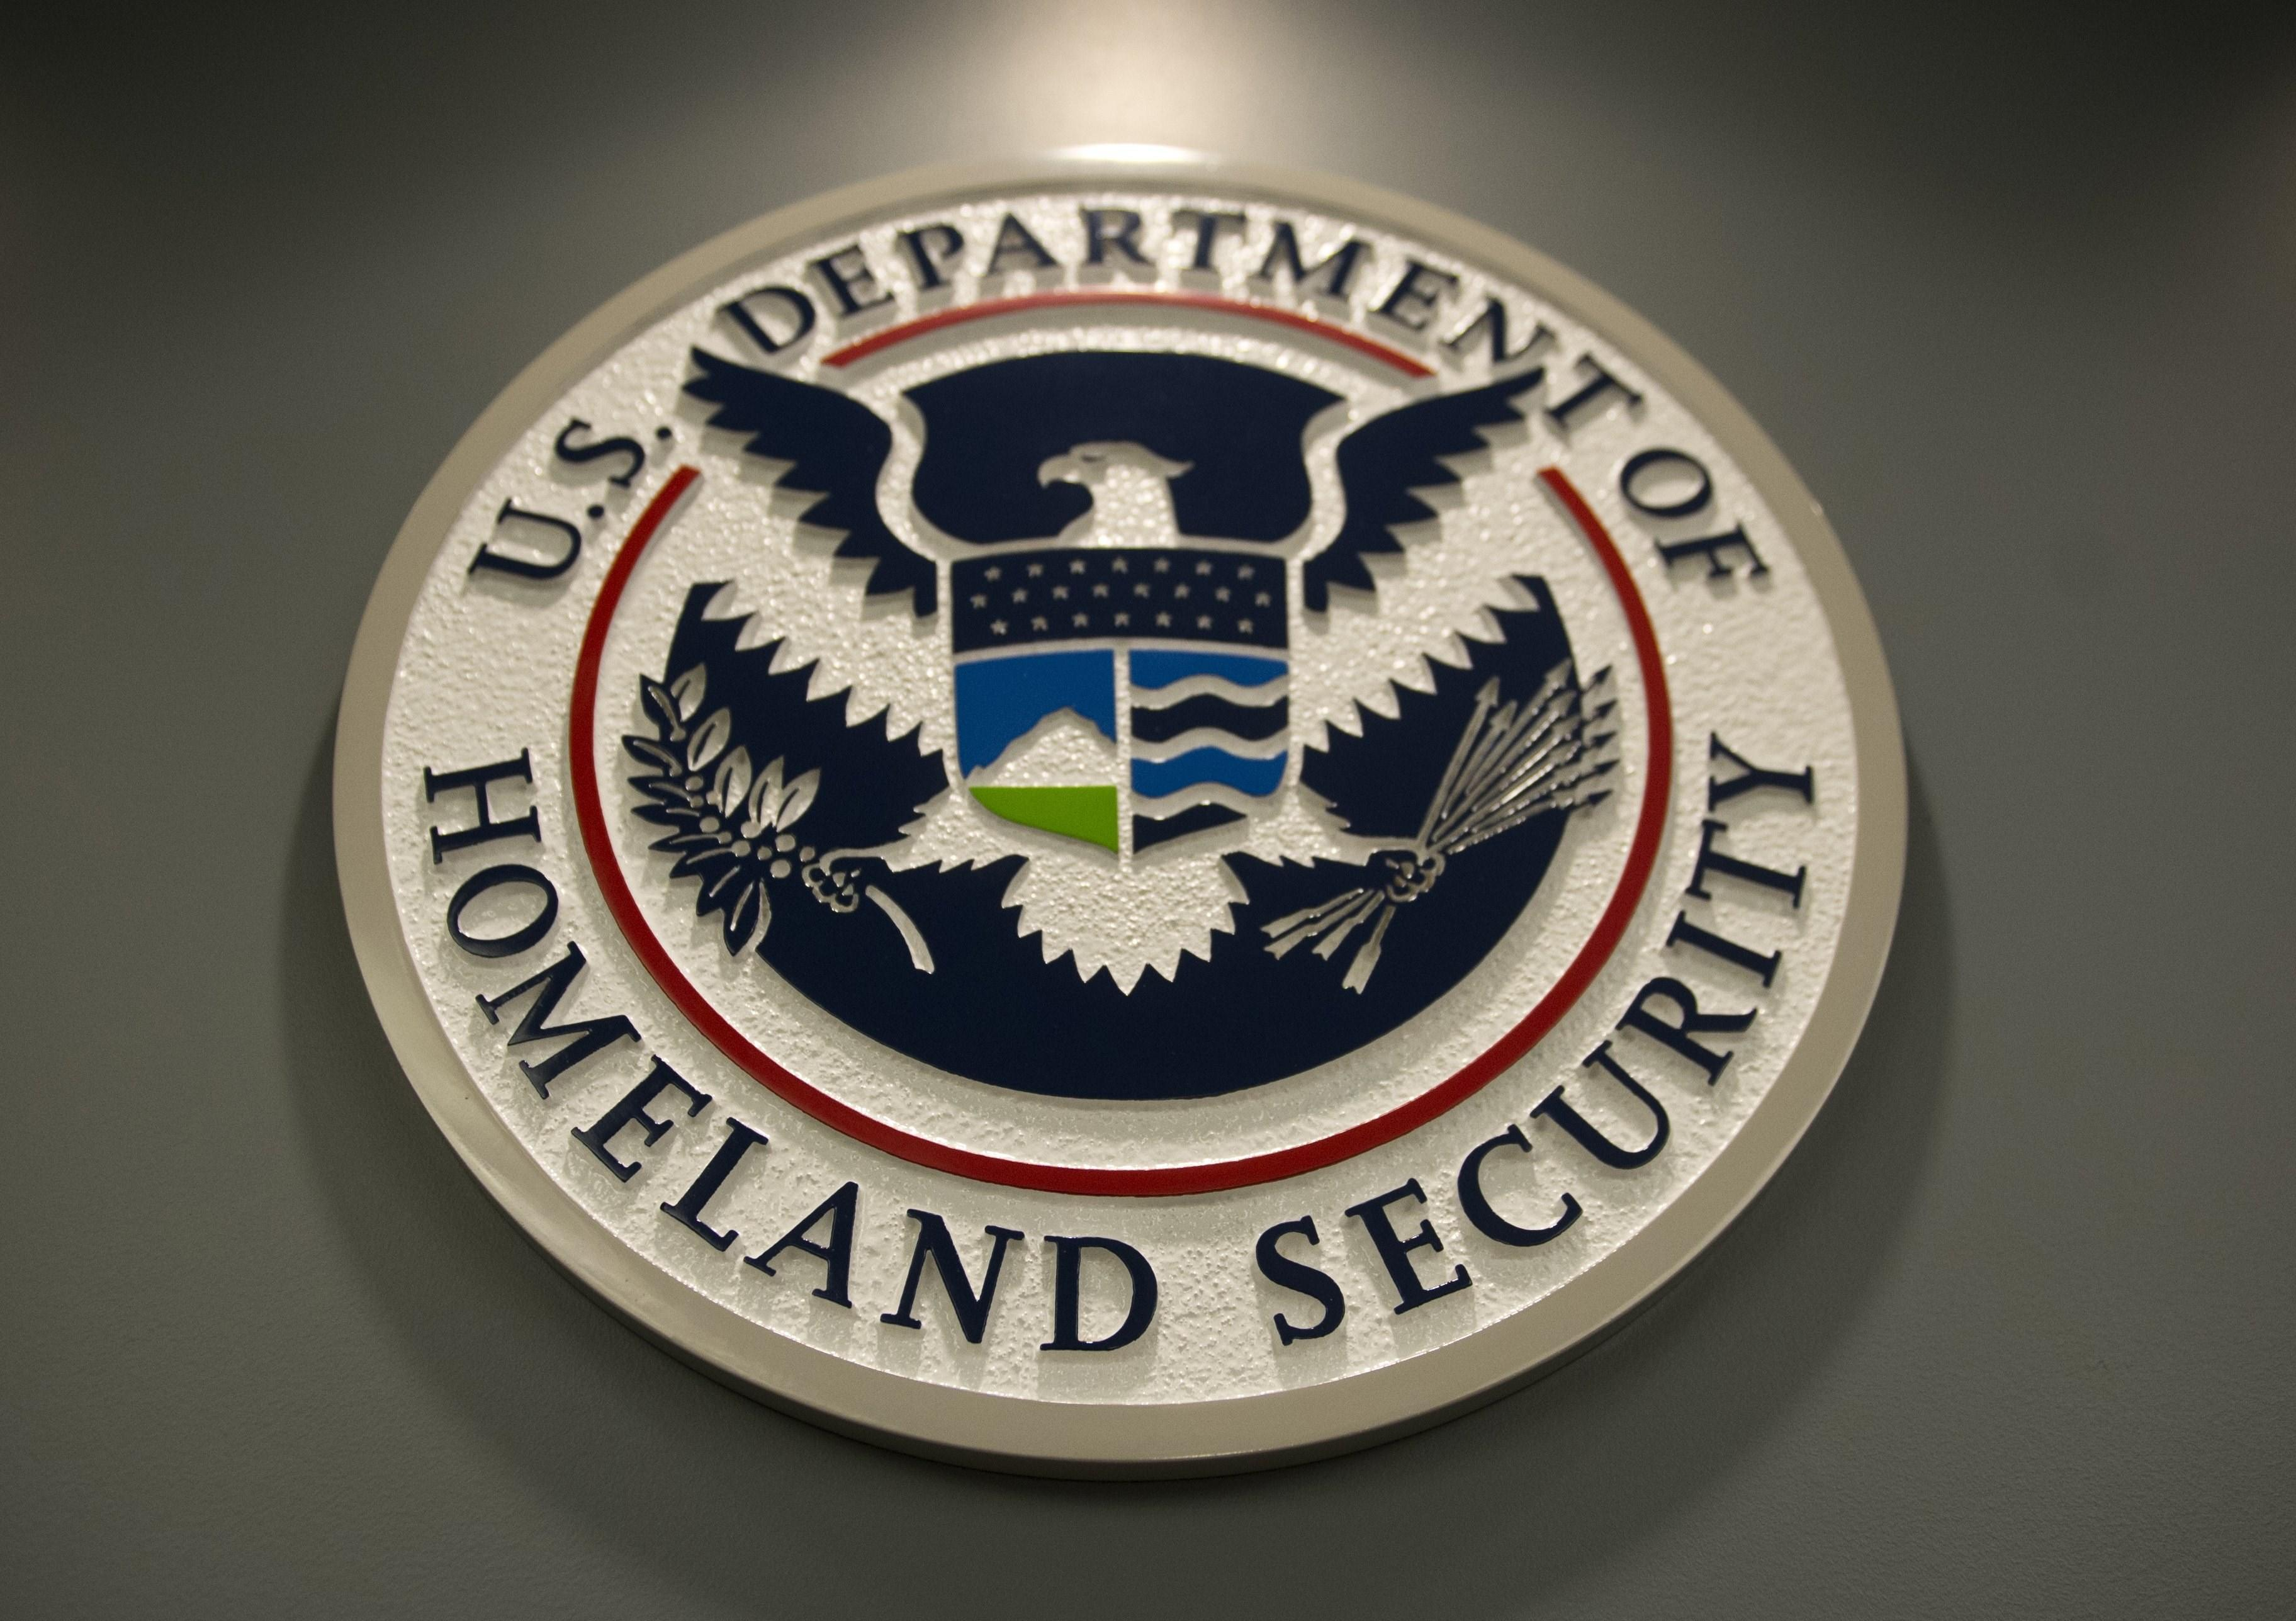 Whistleblower says DHS tried to stifle intel on Russian meddling